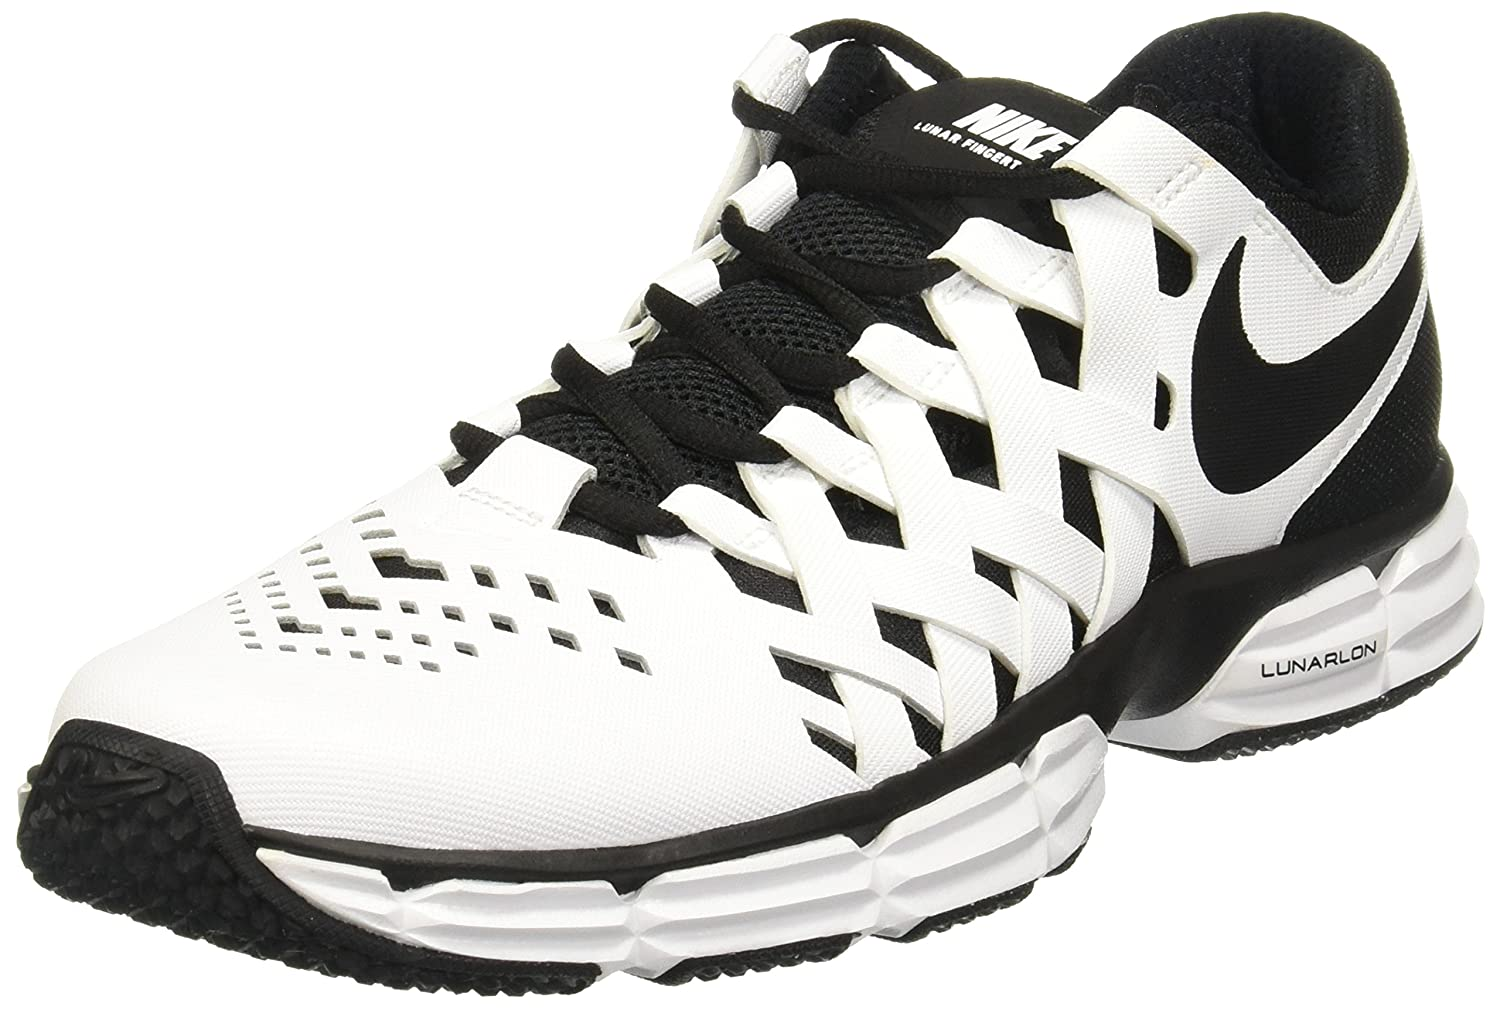 NIKE Men's Lunar Fingertrap Cross Trainer B01HH8O97M 7 D(M) US|White/Black